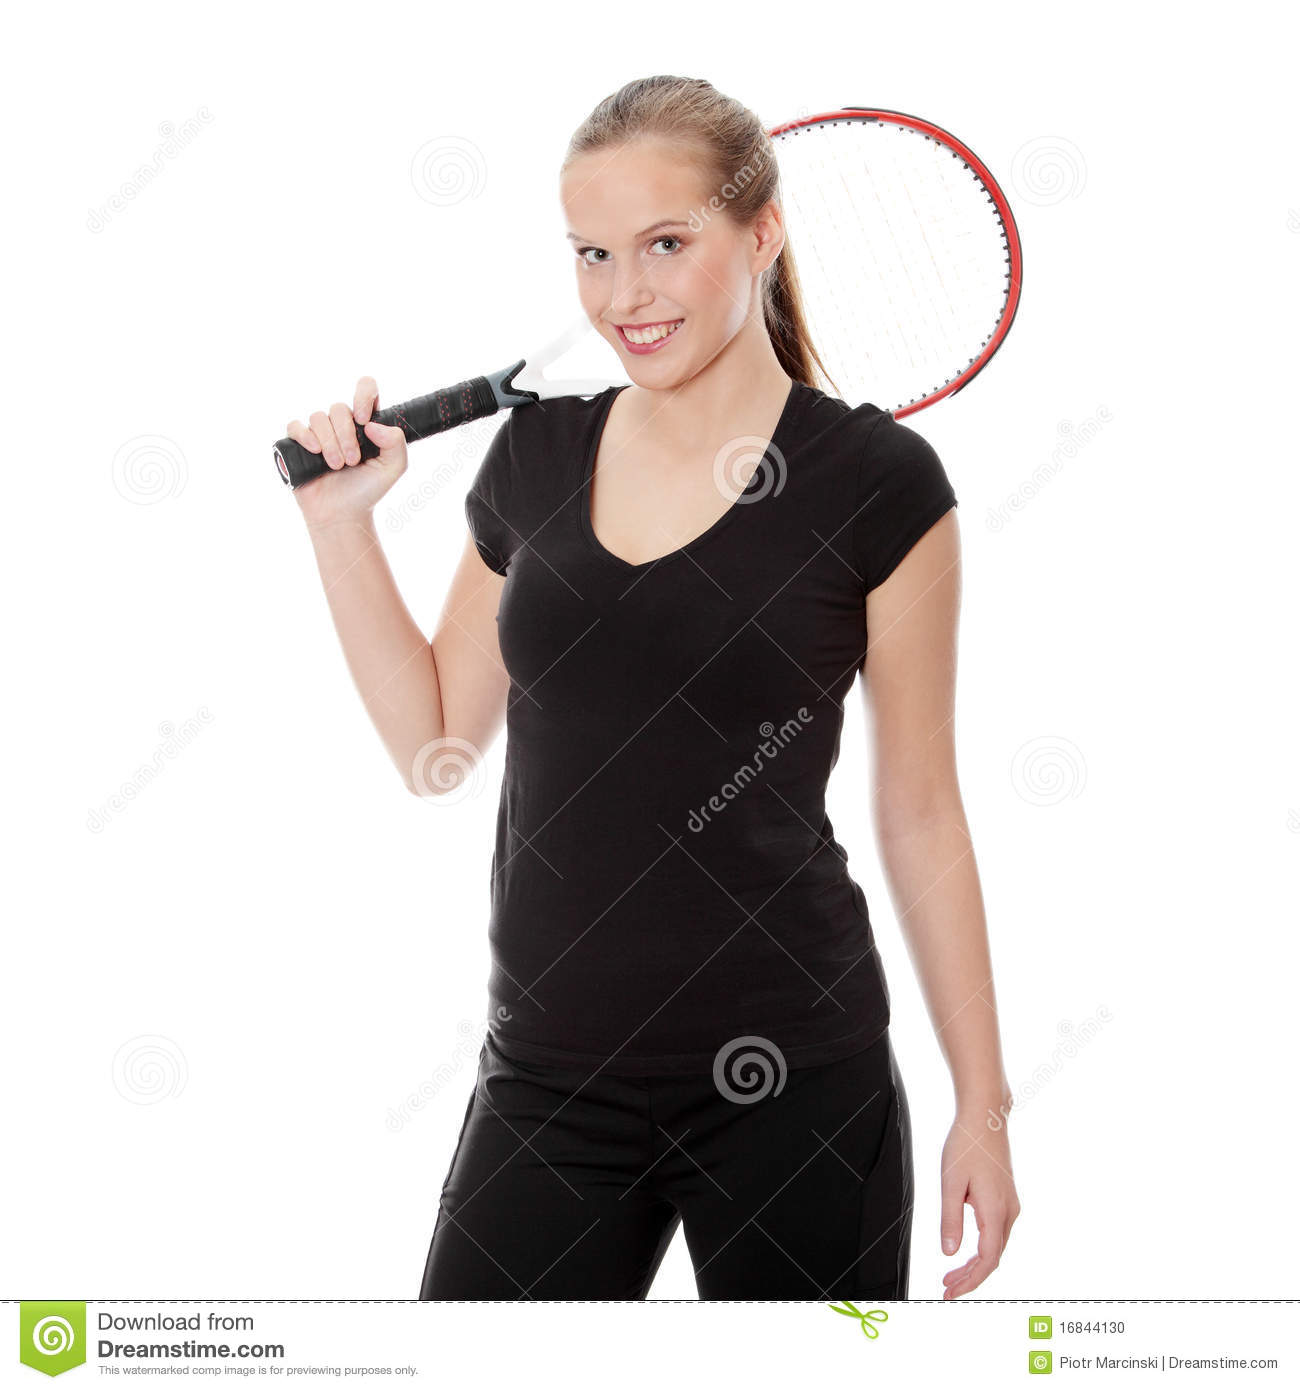 from Yahir photo of teen tennis player